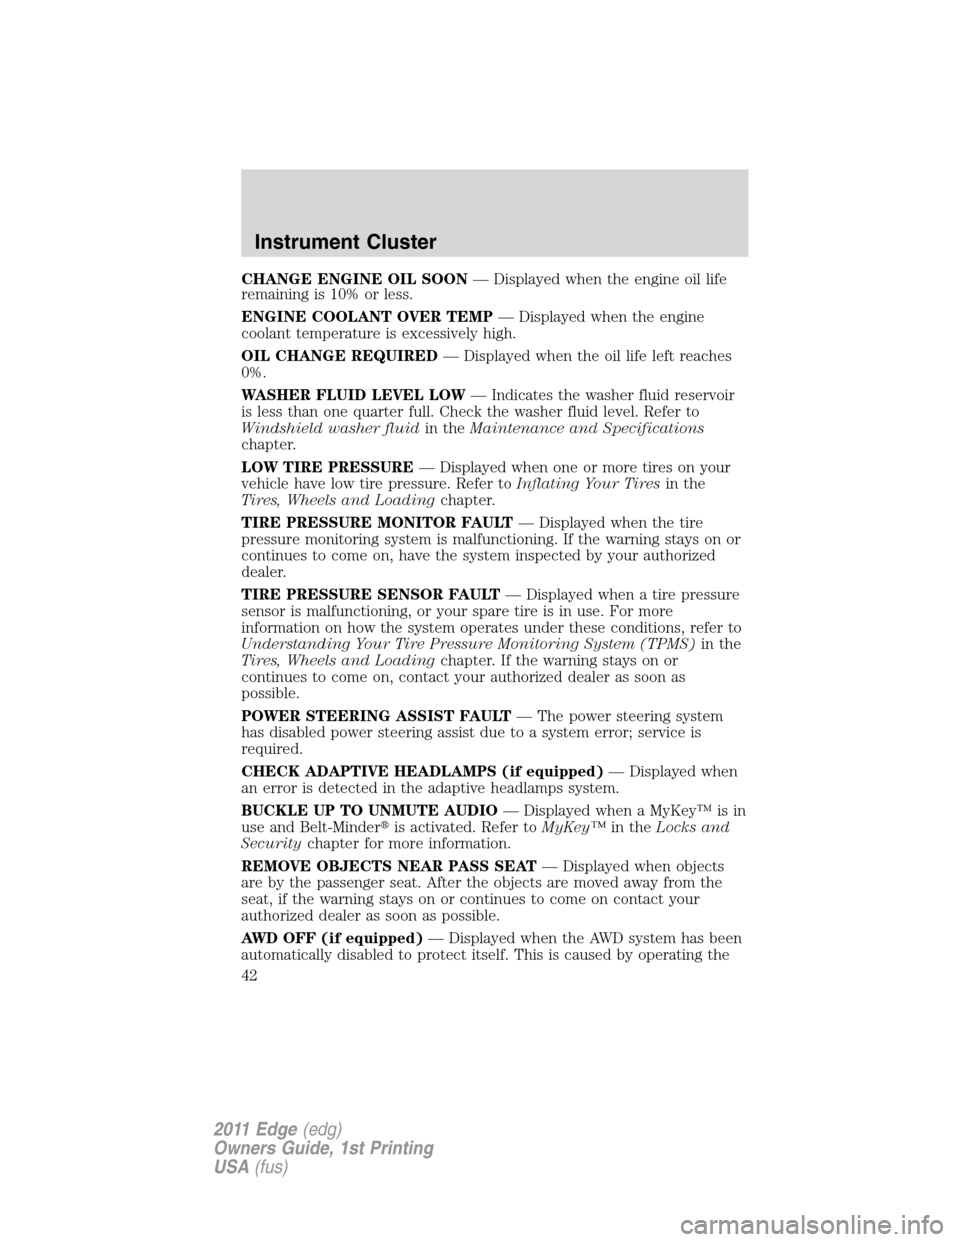 FORD EDGE 2011 1.G Owners Manual, Page 42